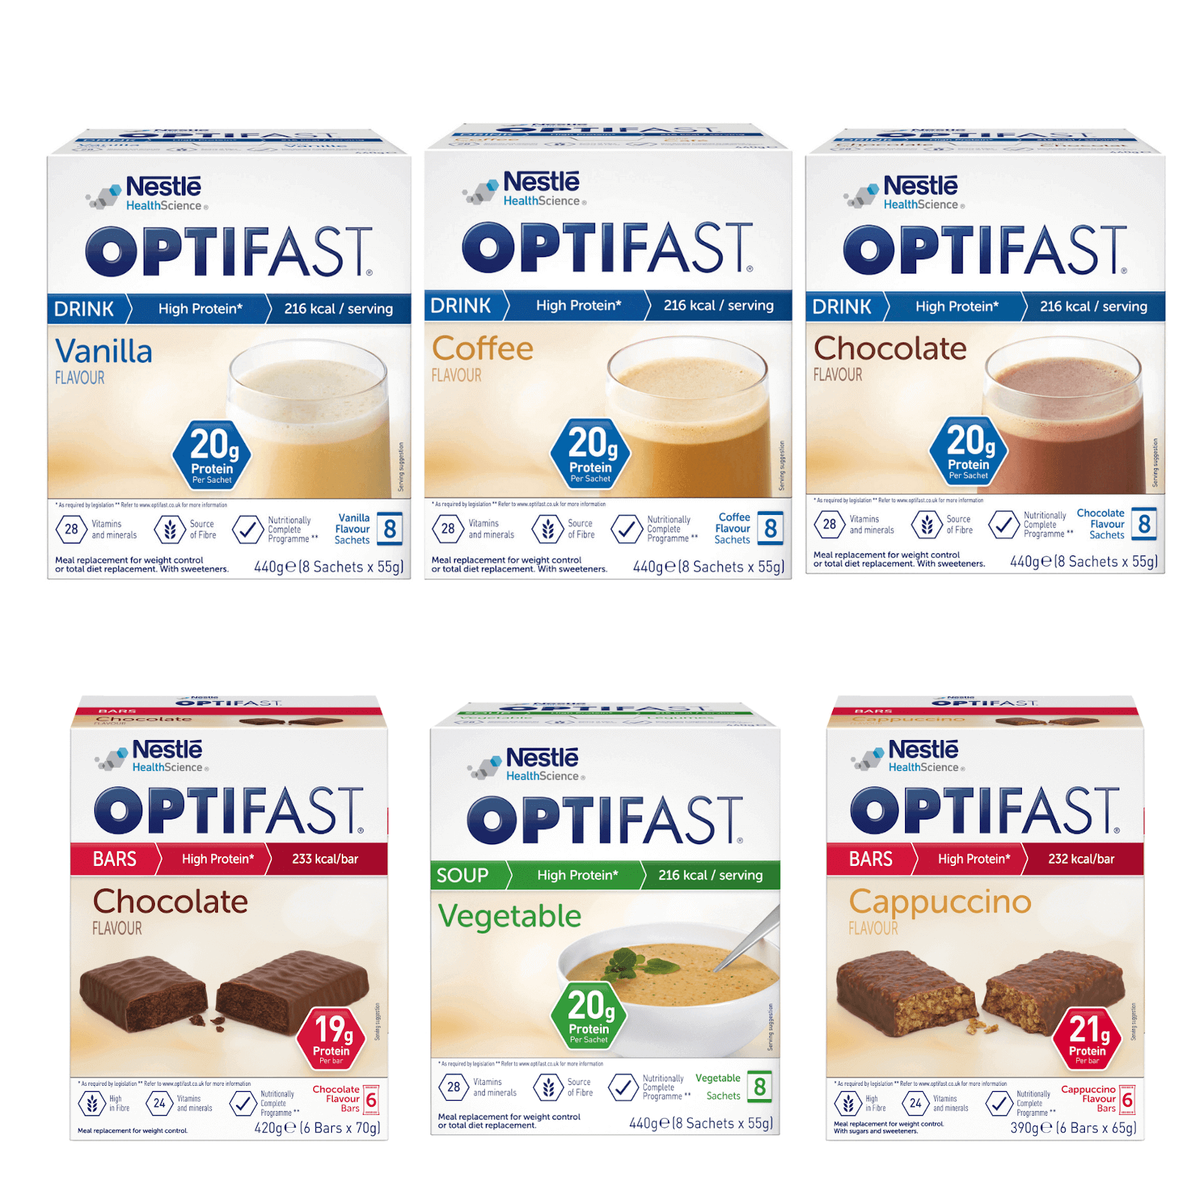 OPTIFAST vanilla, coffee and chocolate shakes, chocolate and cappuccino flavoured bars, and vegetable soup